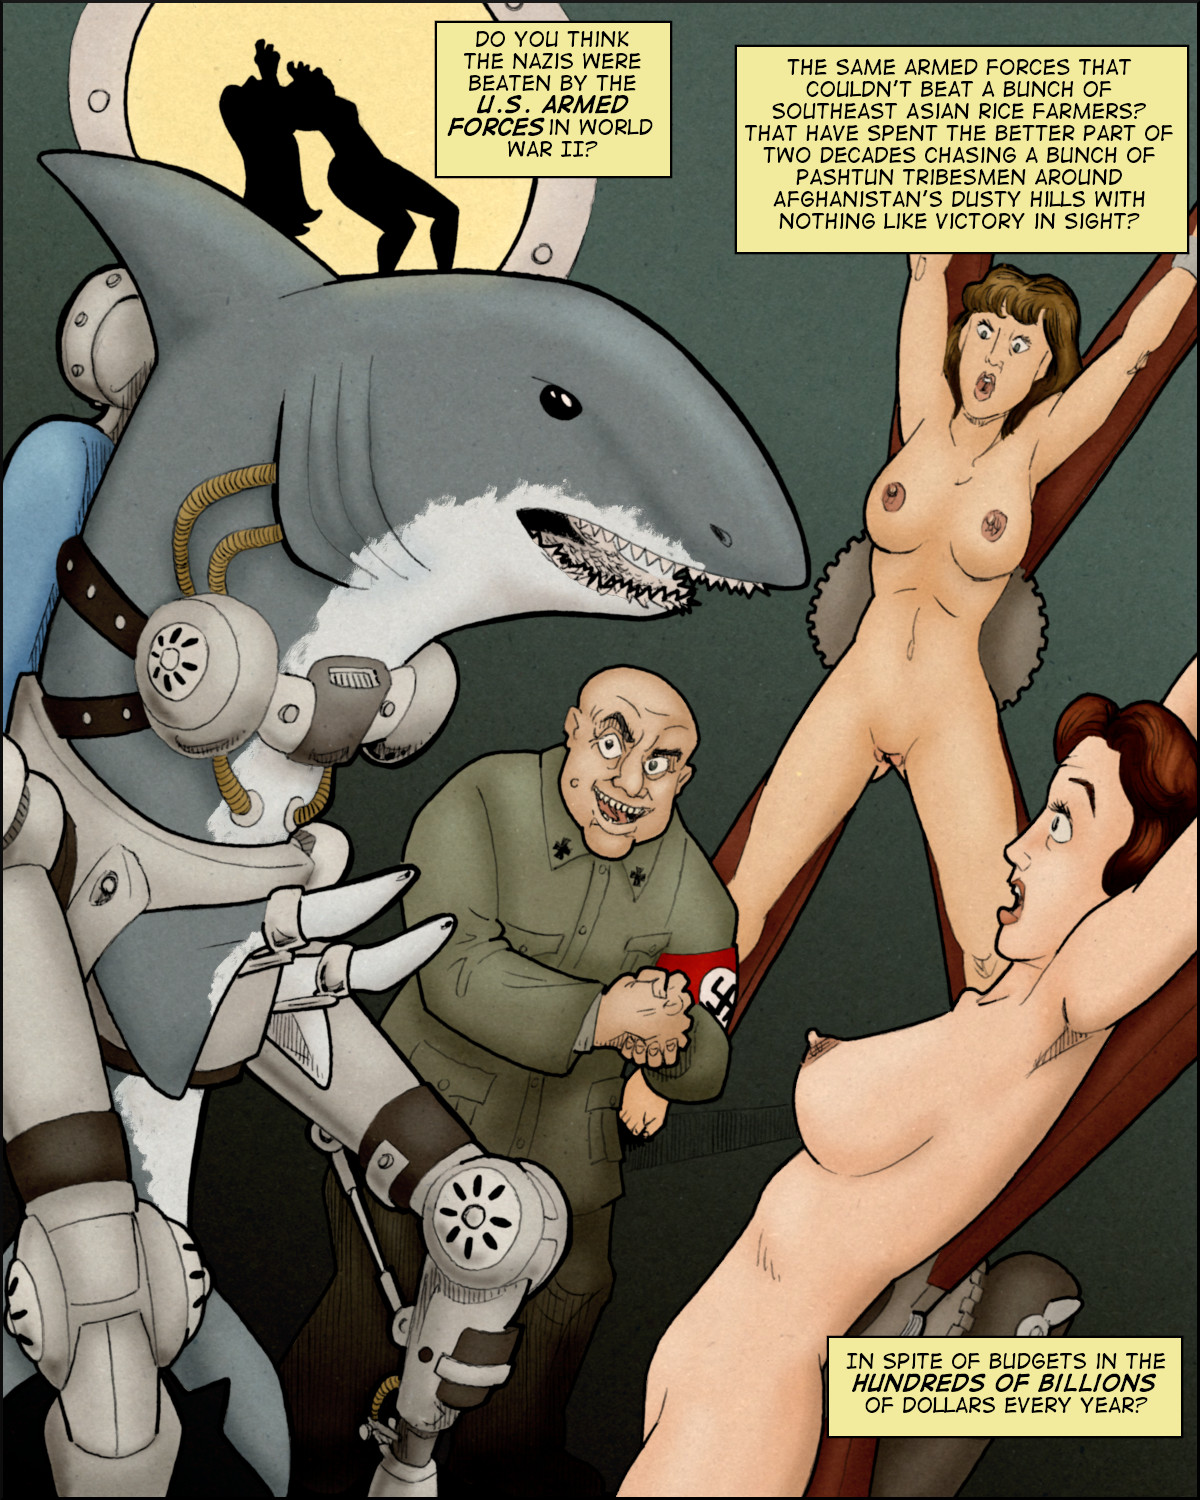 Hitler's Hideous Human-Shark Hybrid Program!